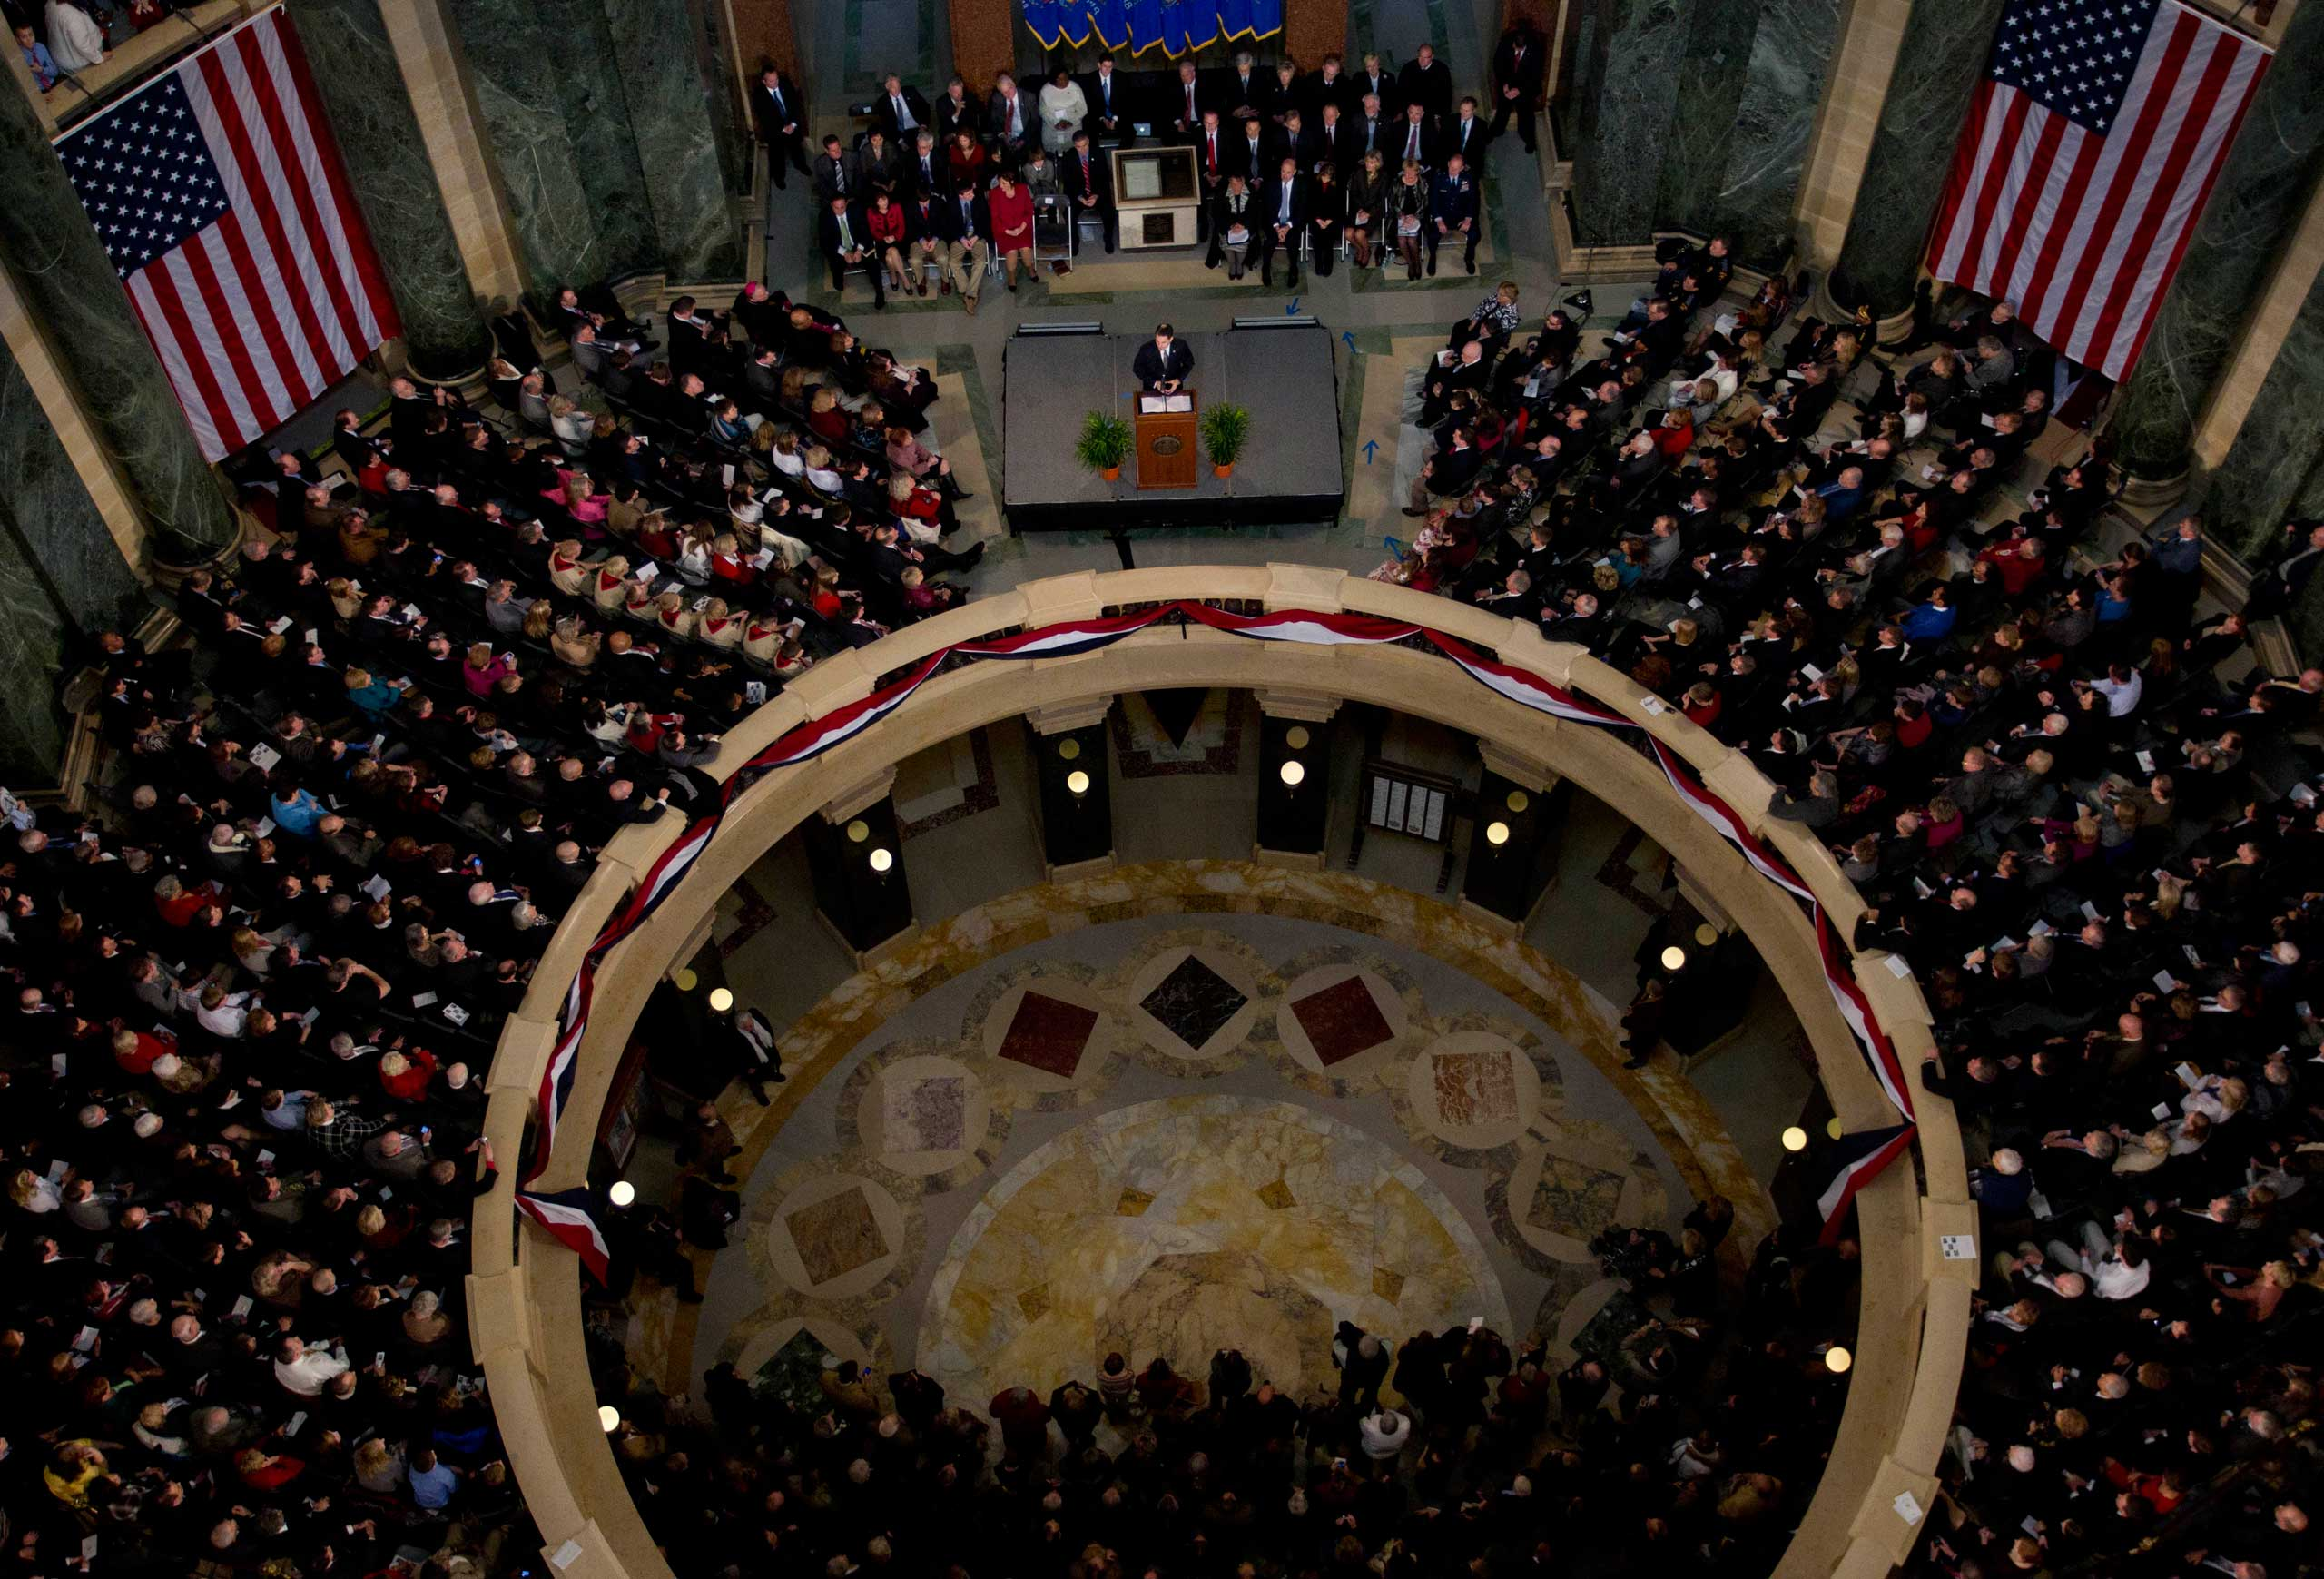 Wisconsin Gov. Scott Walker speaks at an inauguration ceremony in the rotunda of the state Capitol in Madison, Wis., on Jan. 3, 2011.